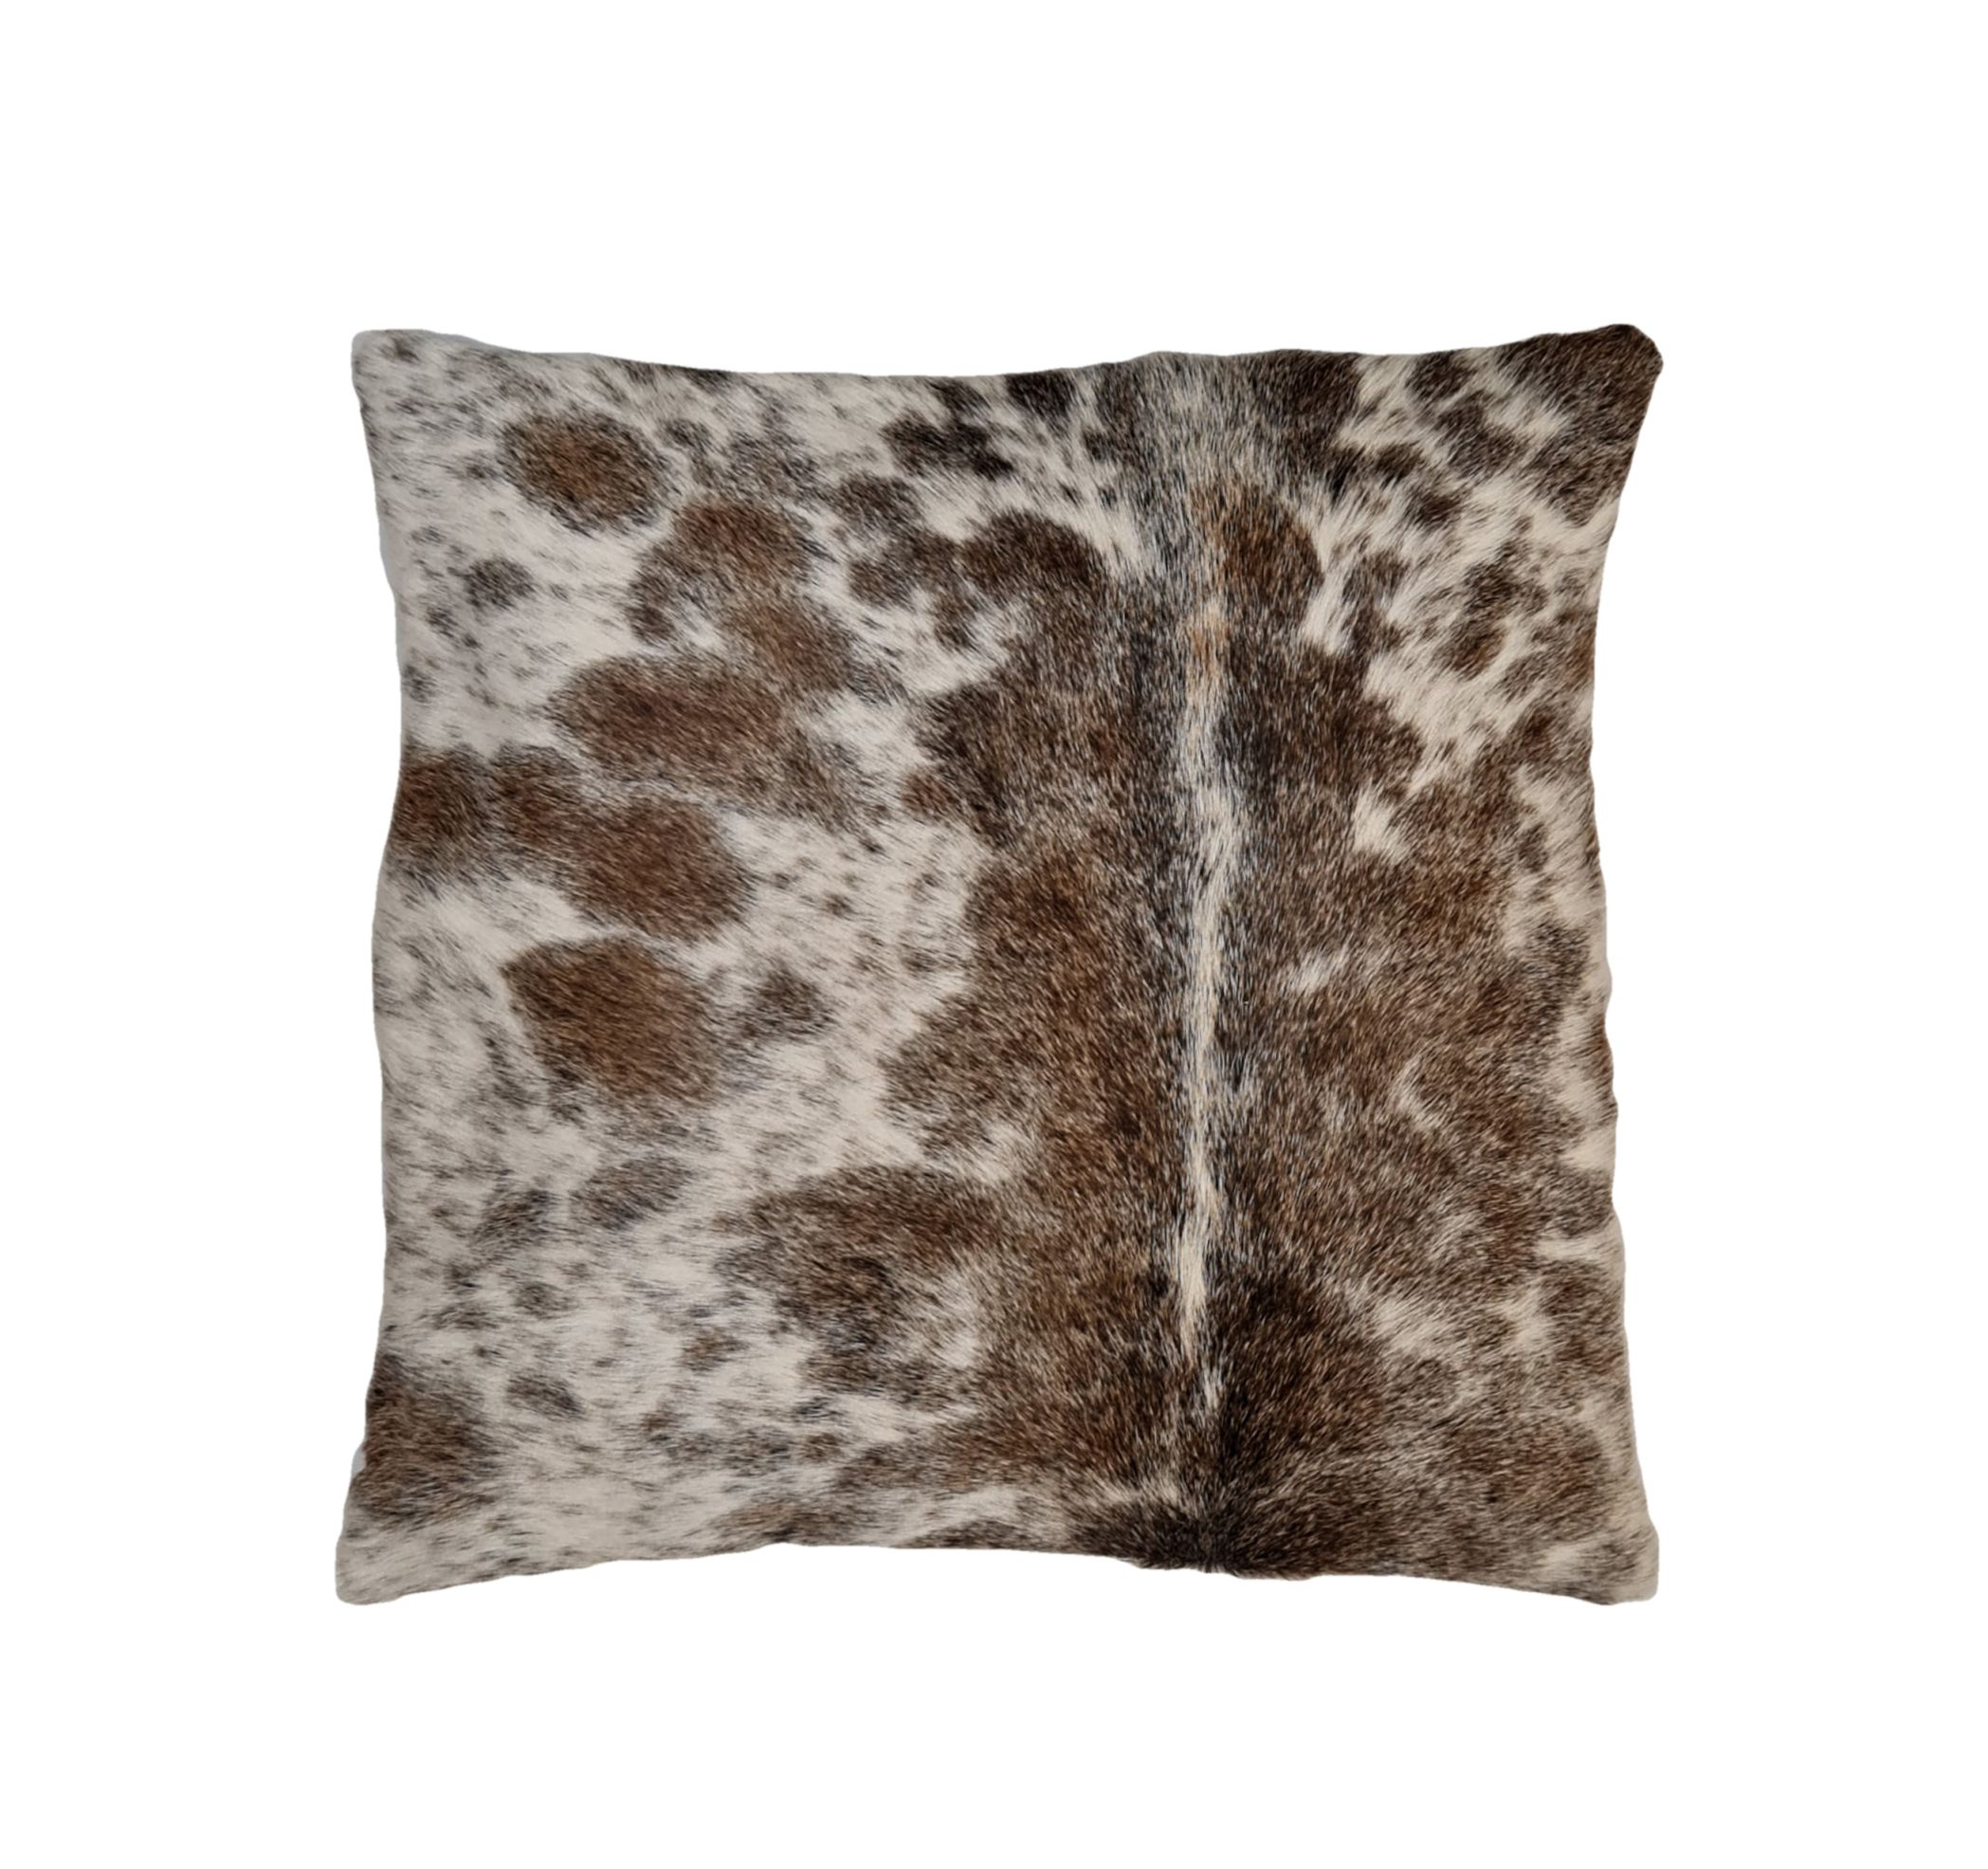 cowhide pillow cushion covers hand crafted real animal skin cover rare unique copy